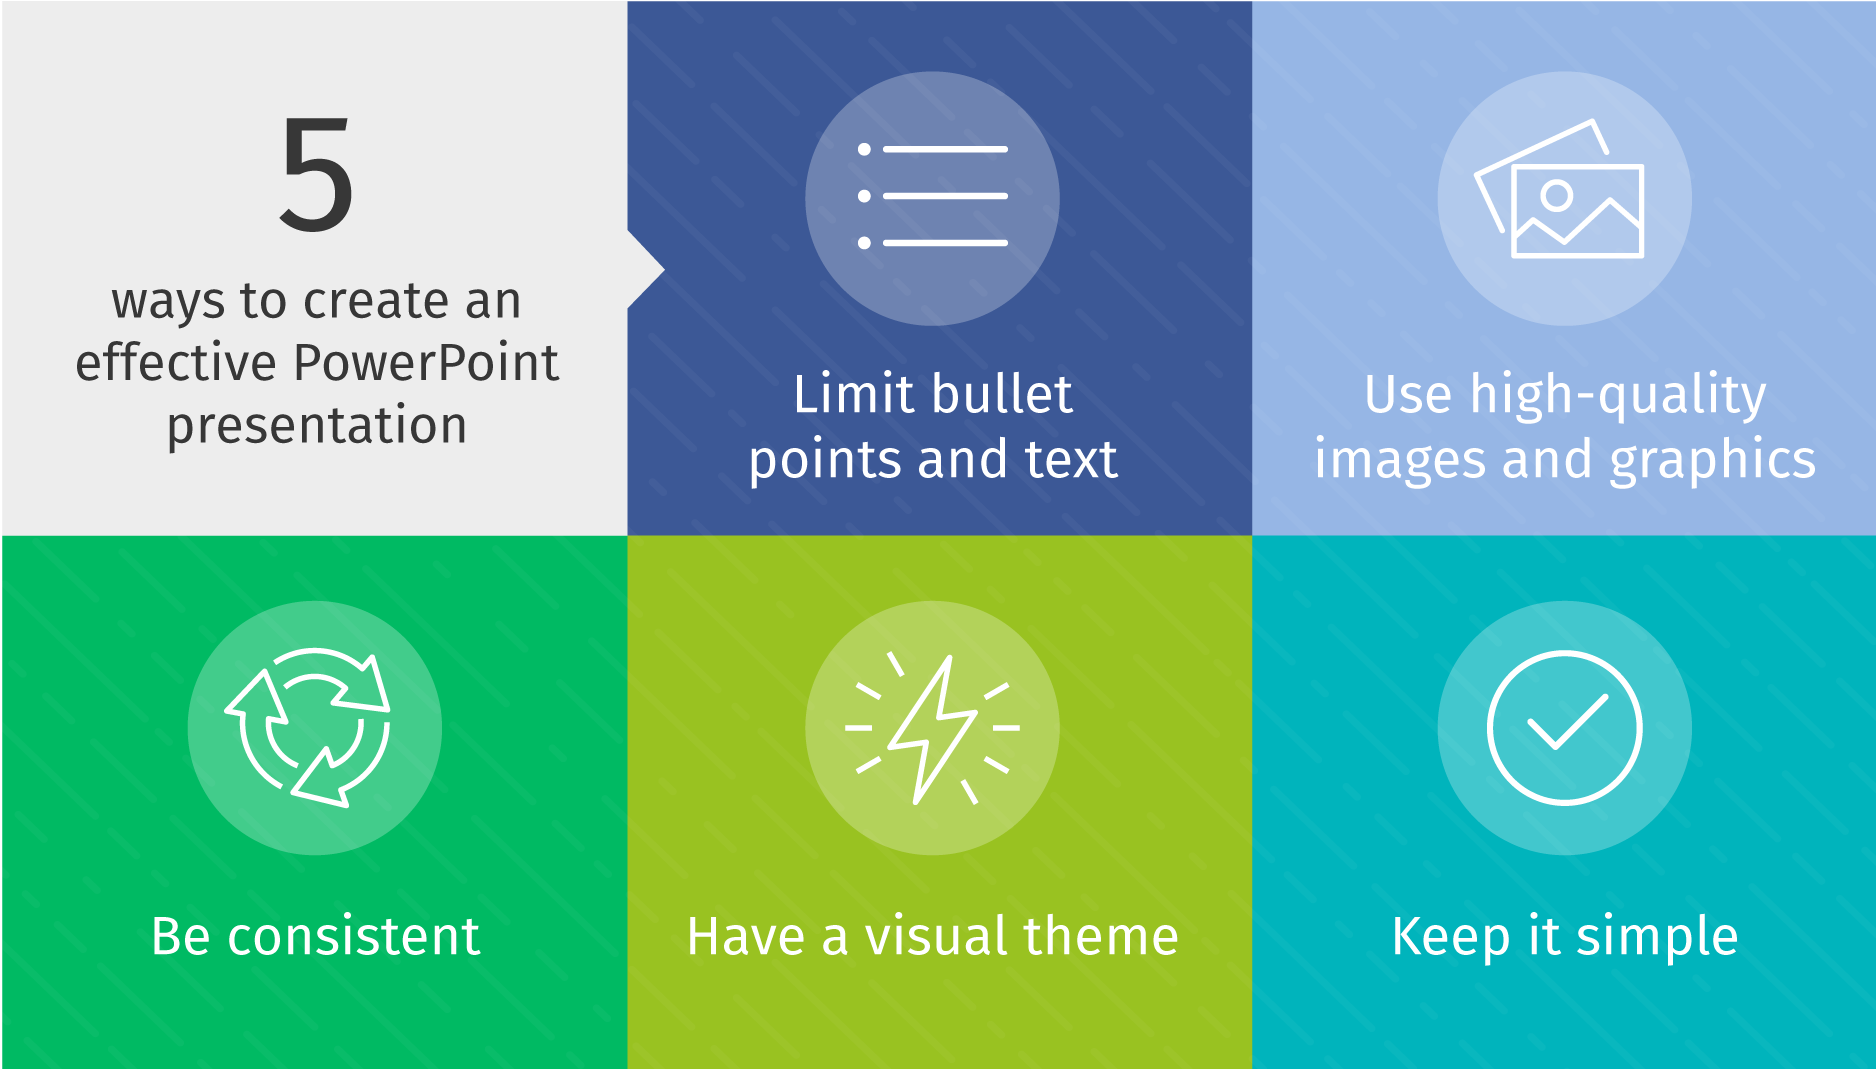 5 ways to create an effective PowerPoint presentation